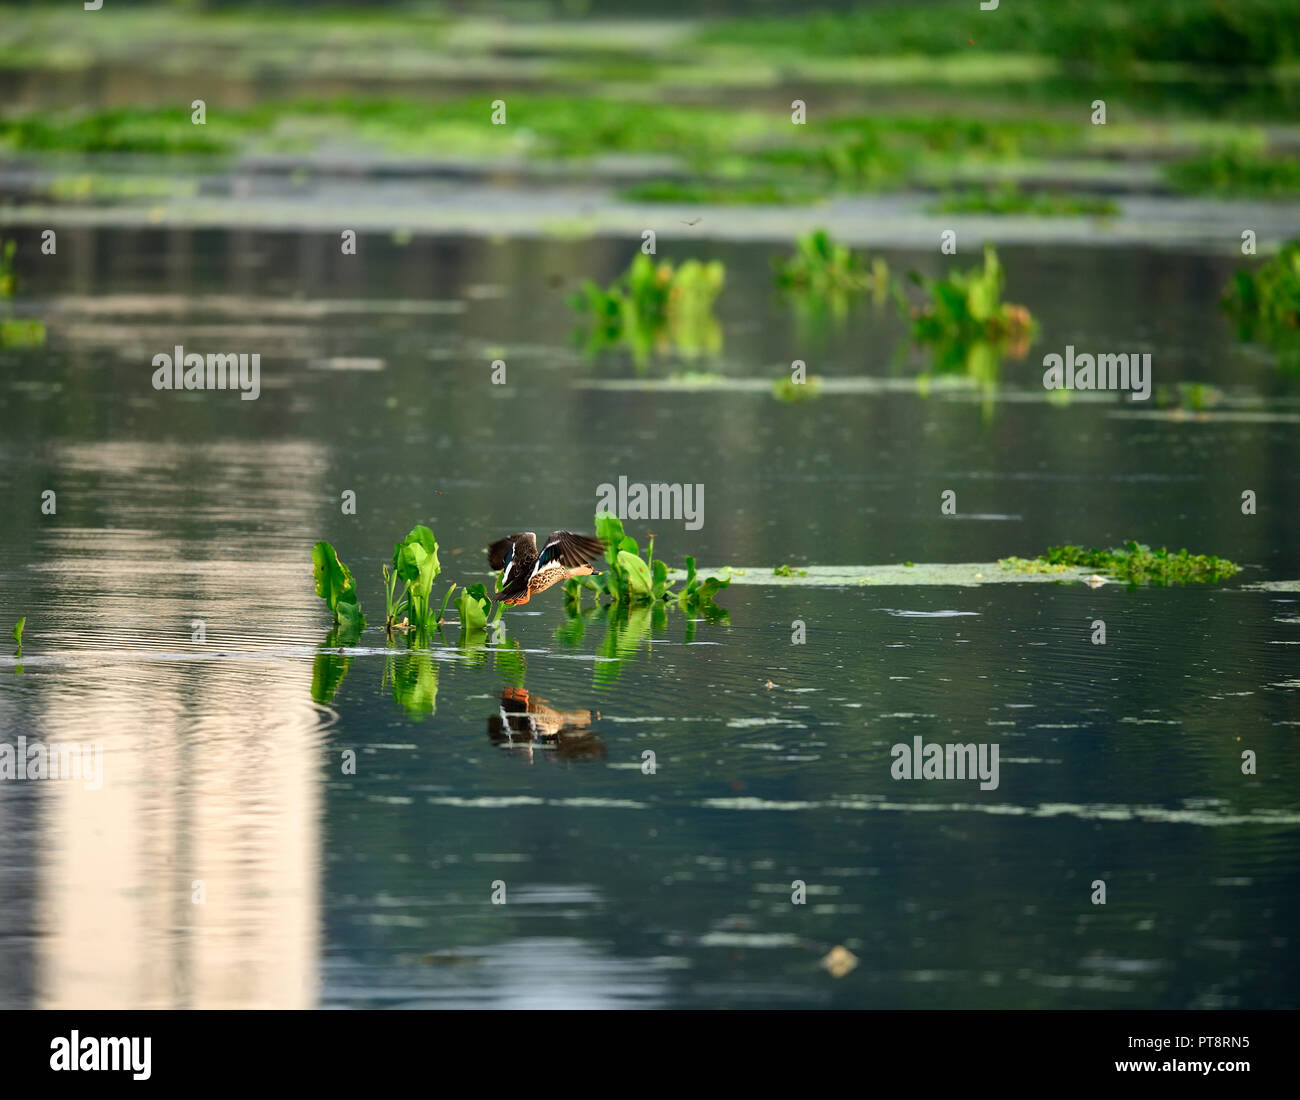 The Indian spot-billed duck is a large dabbling duck which is a non-migratory breeding duck throughout freshwater wetlands in the Indian subcontinent. Stock Photo